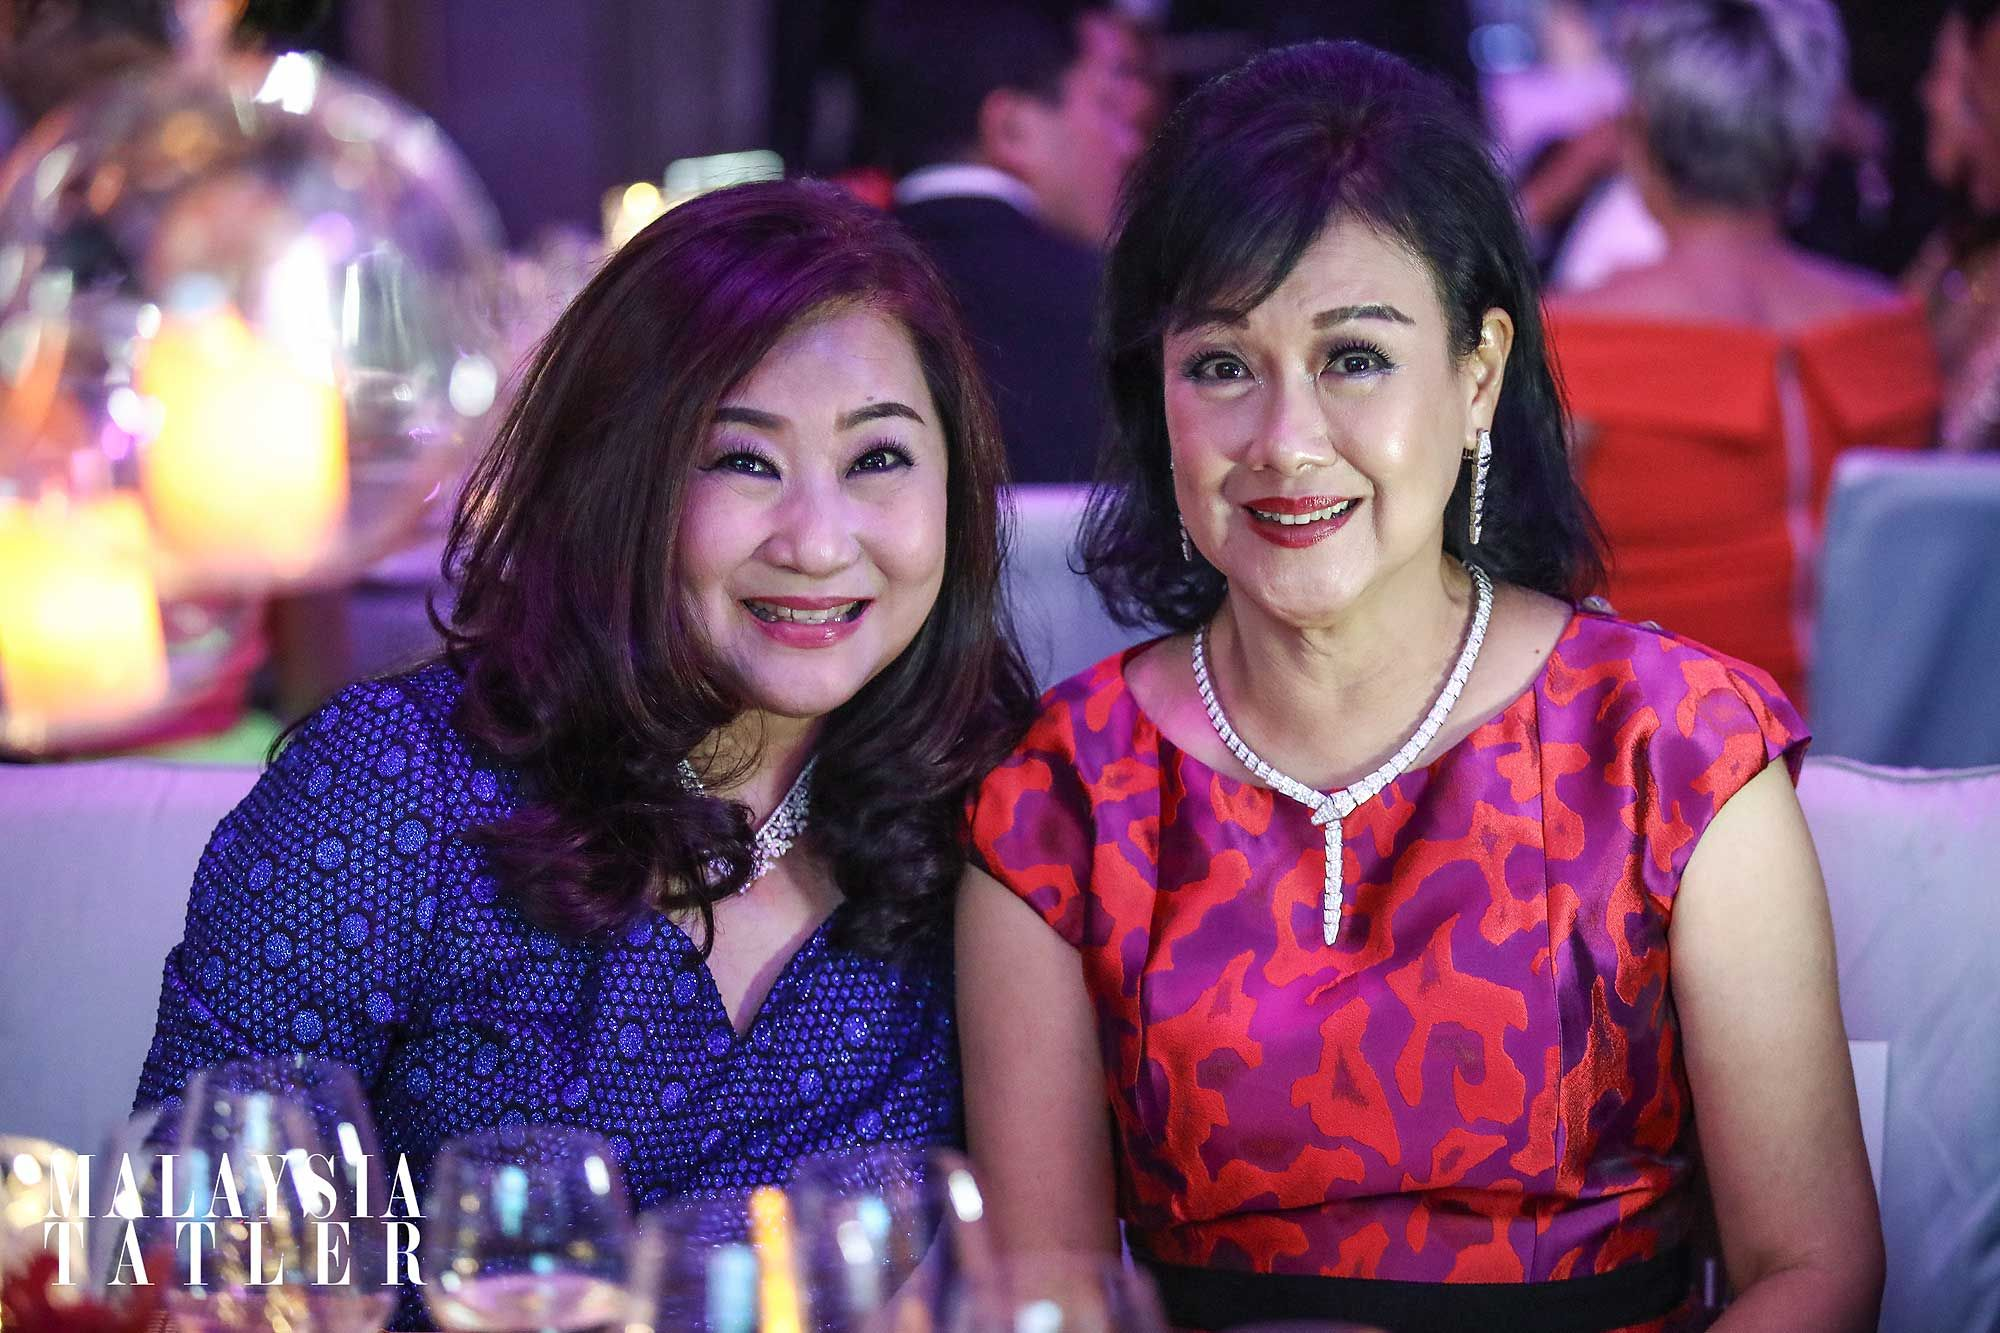 Sharon Yap and Puan Sri Ivy Tan